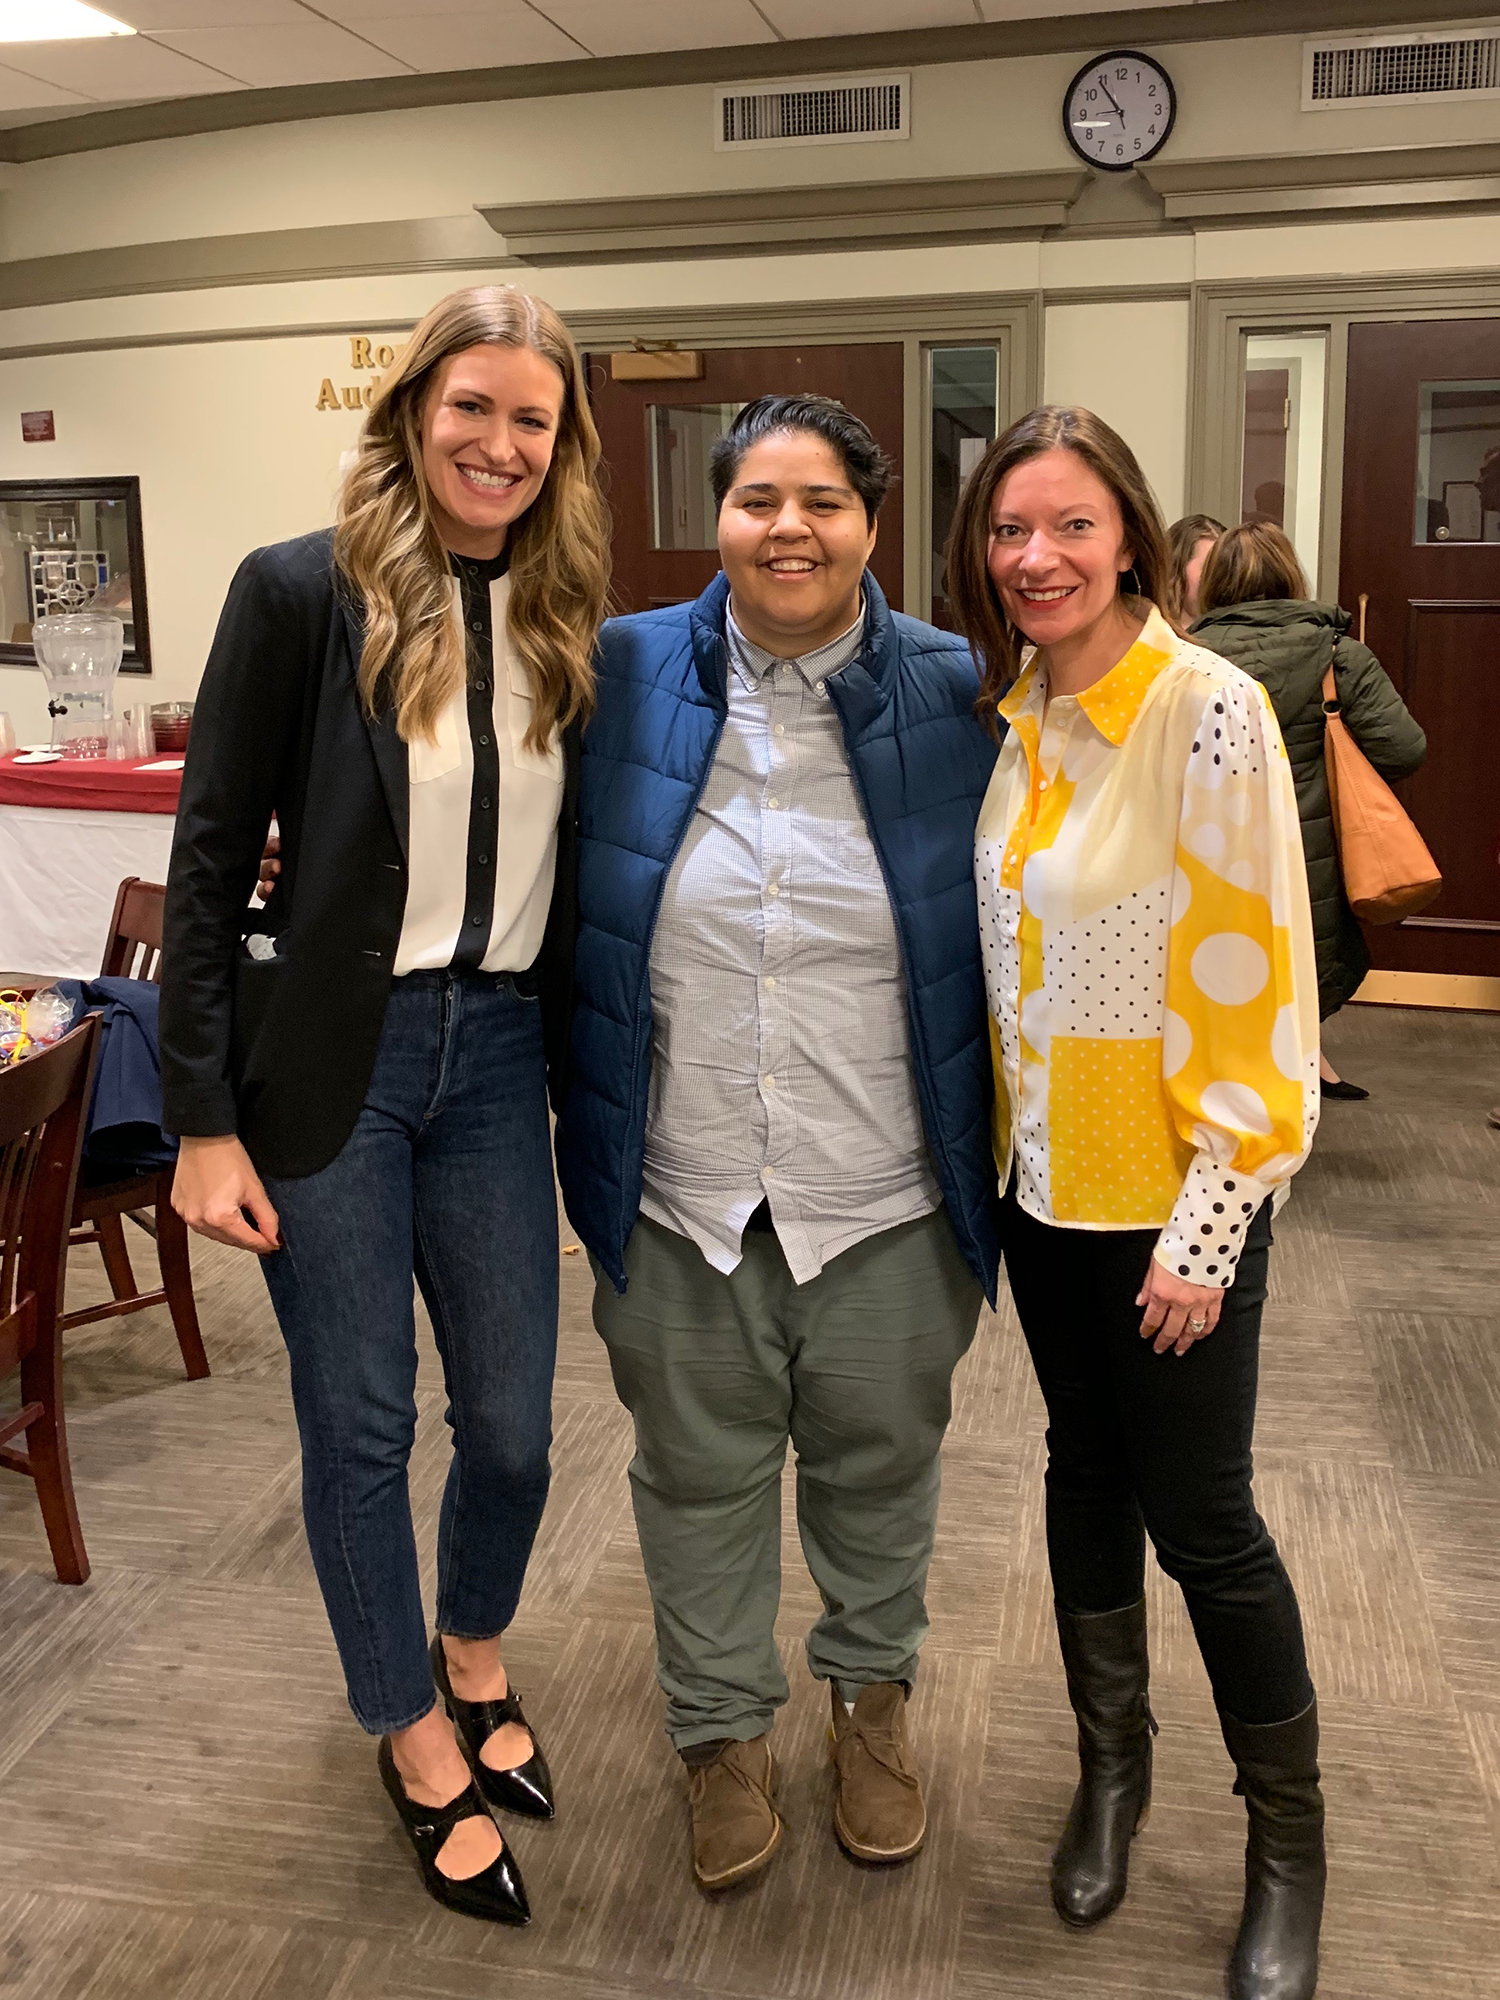 Laura Behnke, Katie Barnes and Sarah Lehberger (shown L-R) after their media panel at Iona College.